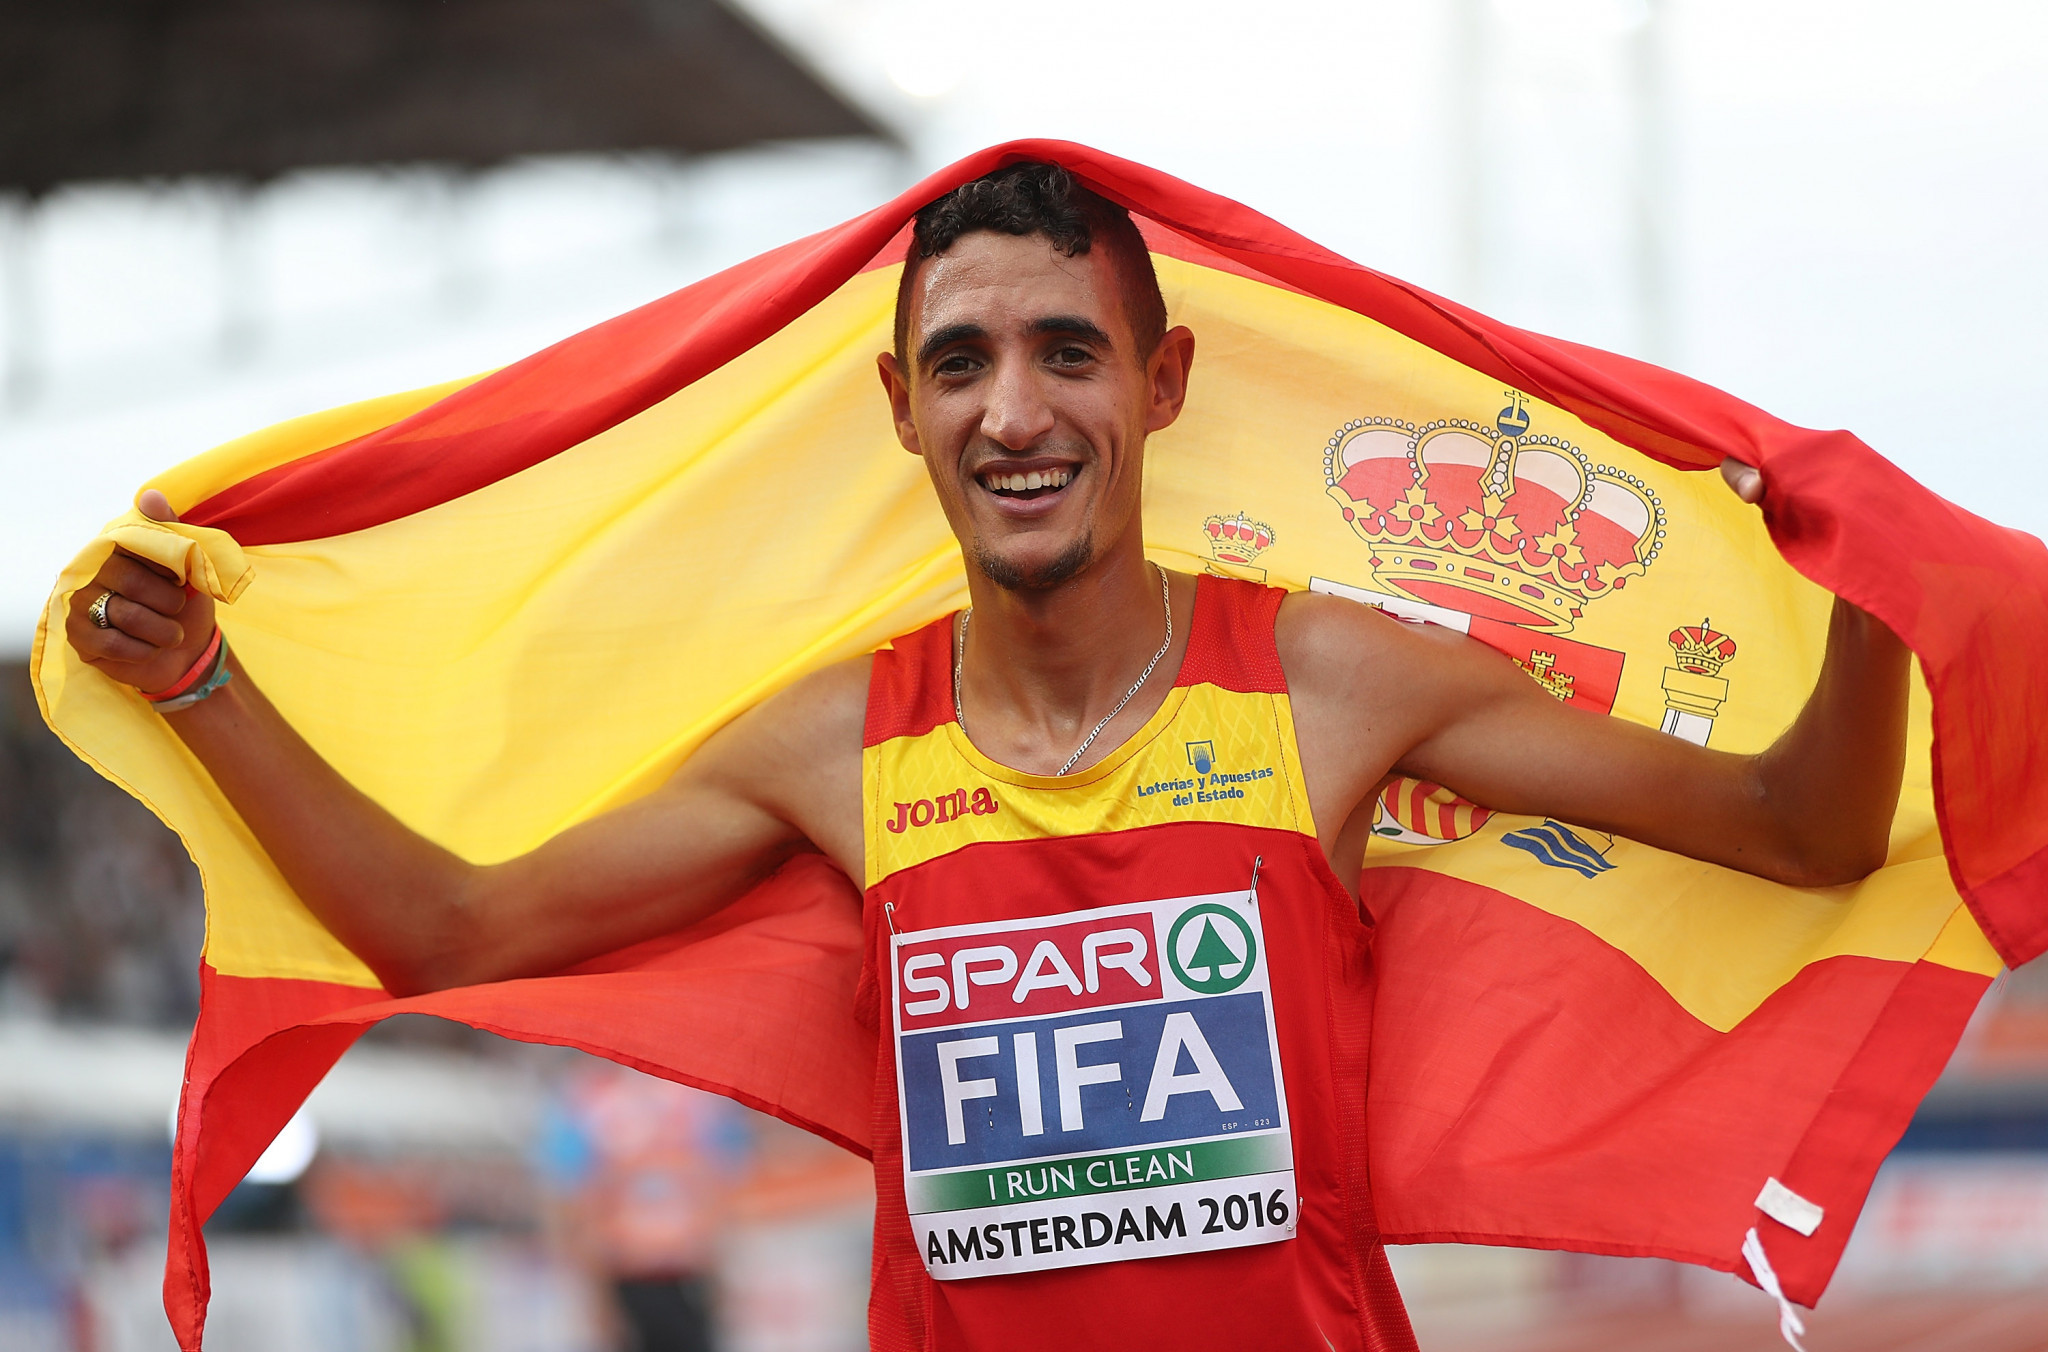 Reigning European 5,000 metres champion Ilias Fifa has been arrested in Barcelona for suspected links to a doping ring ©Getty Images